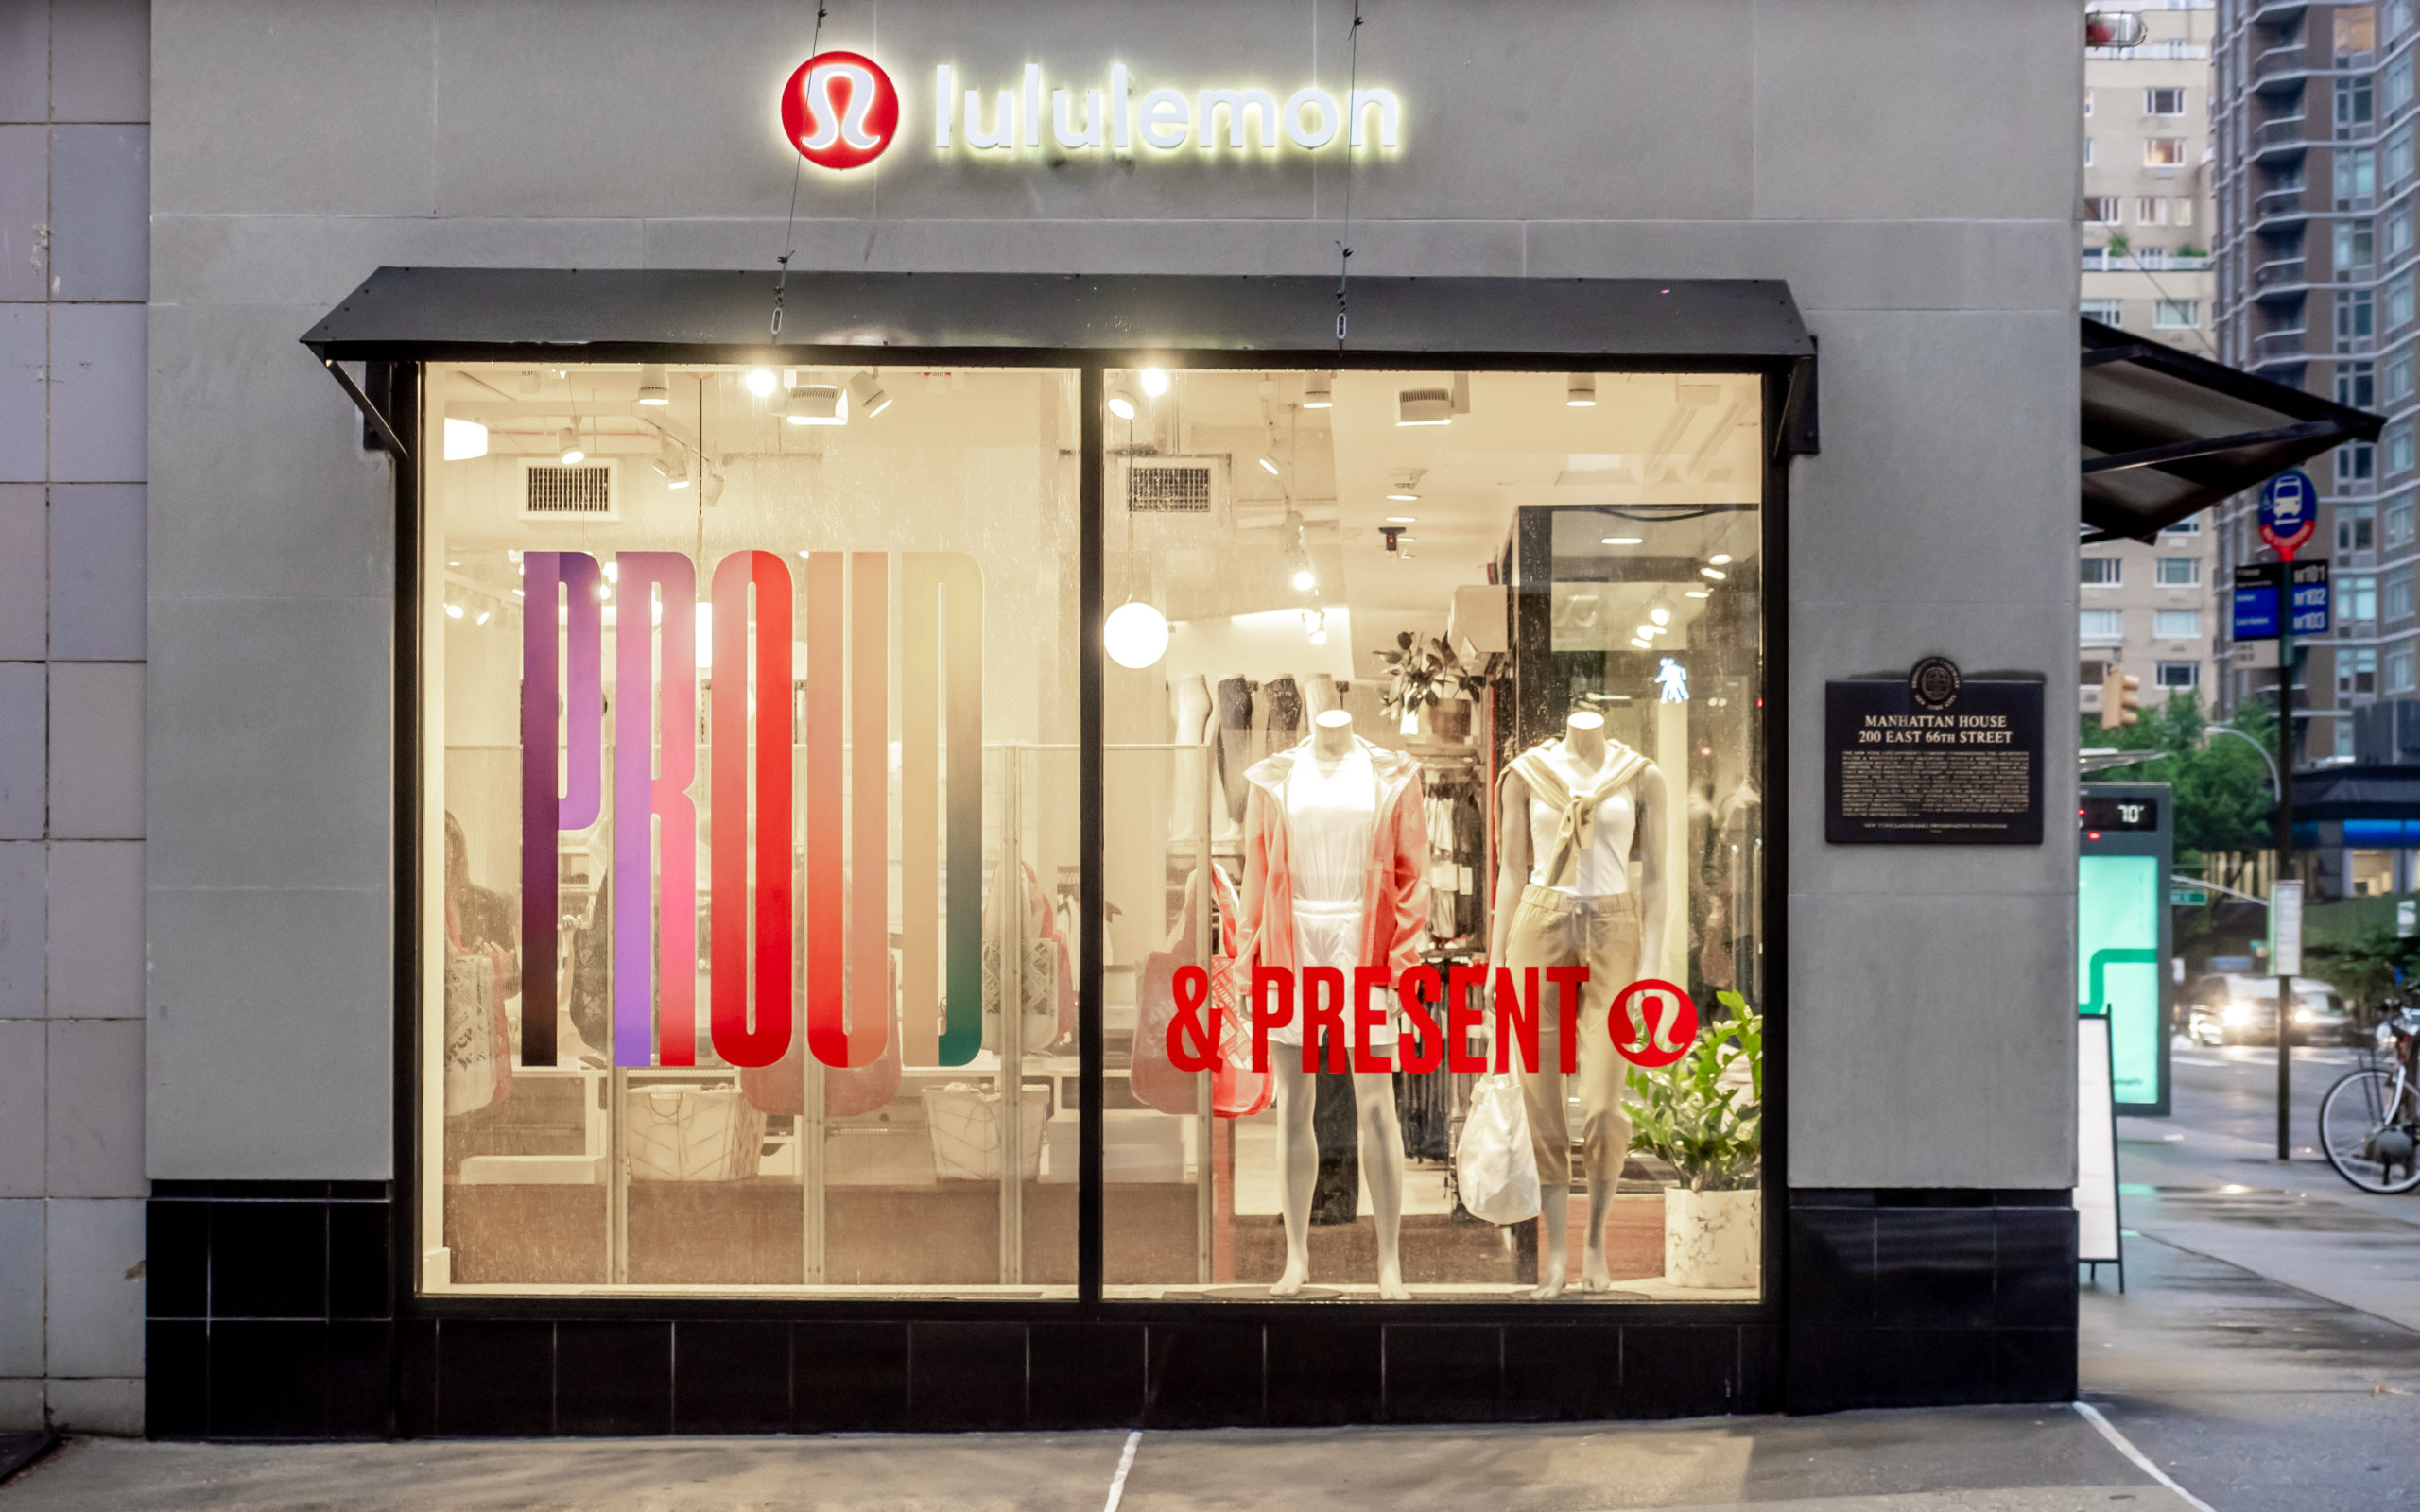 Lululemon Is Finally Expanding Their Sizing